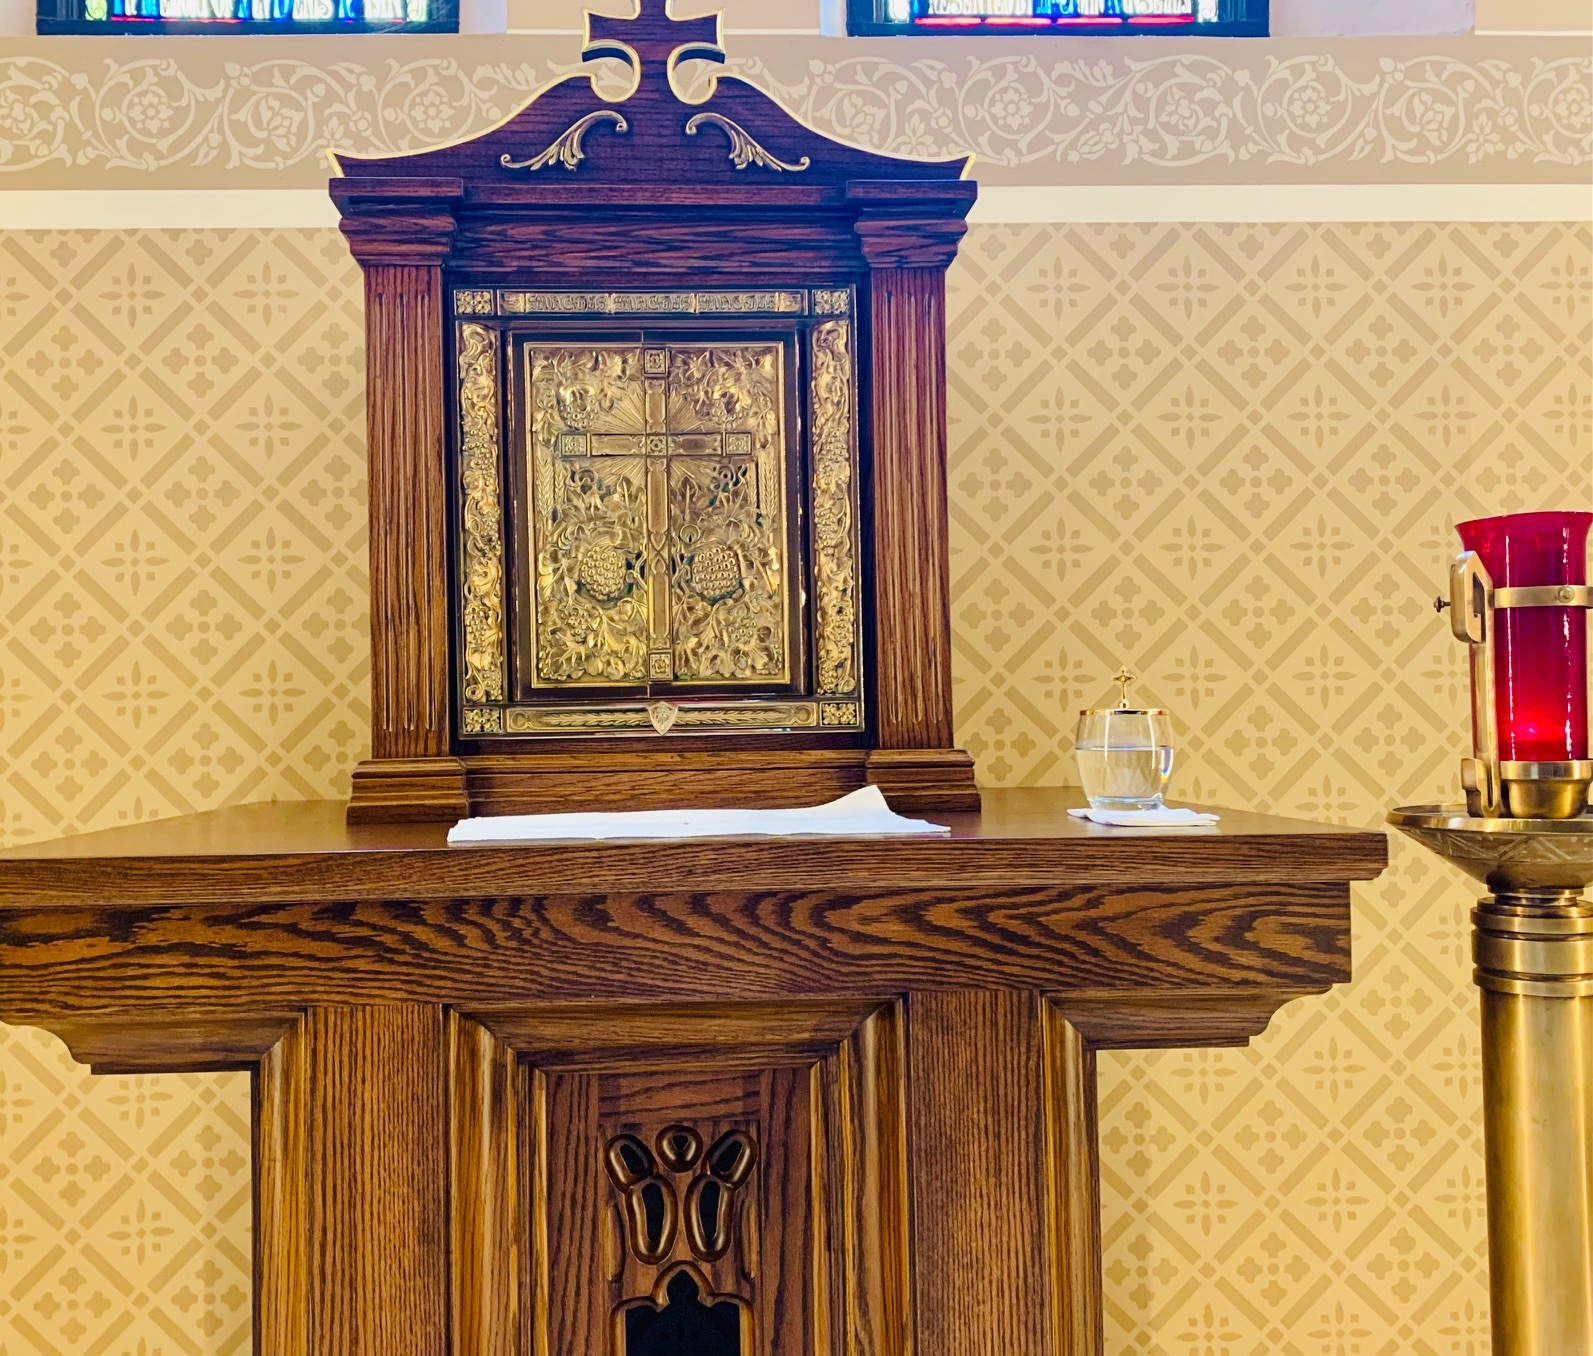 First Eucharist and Reconciliation